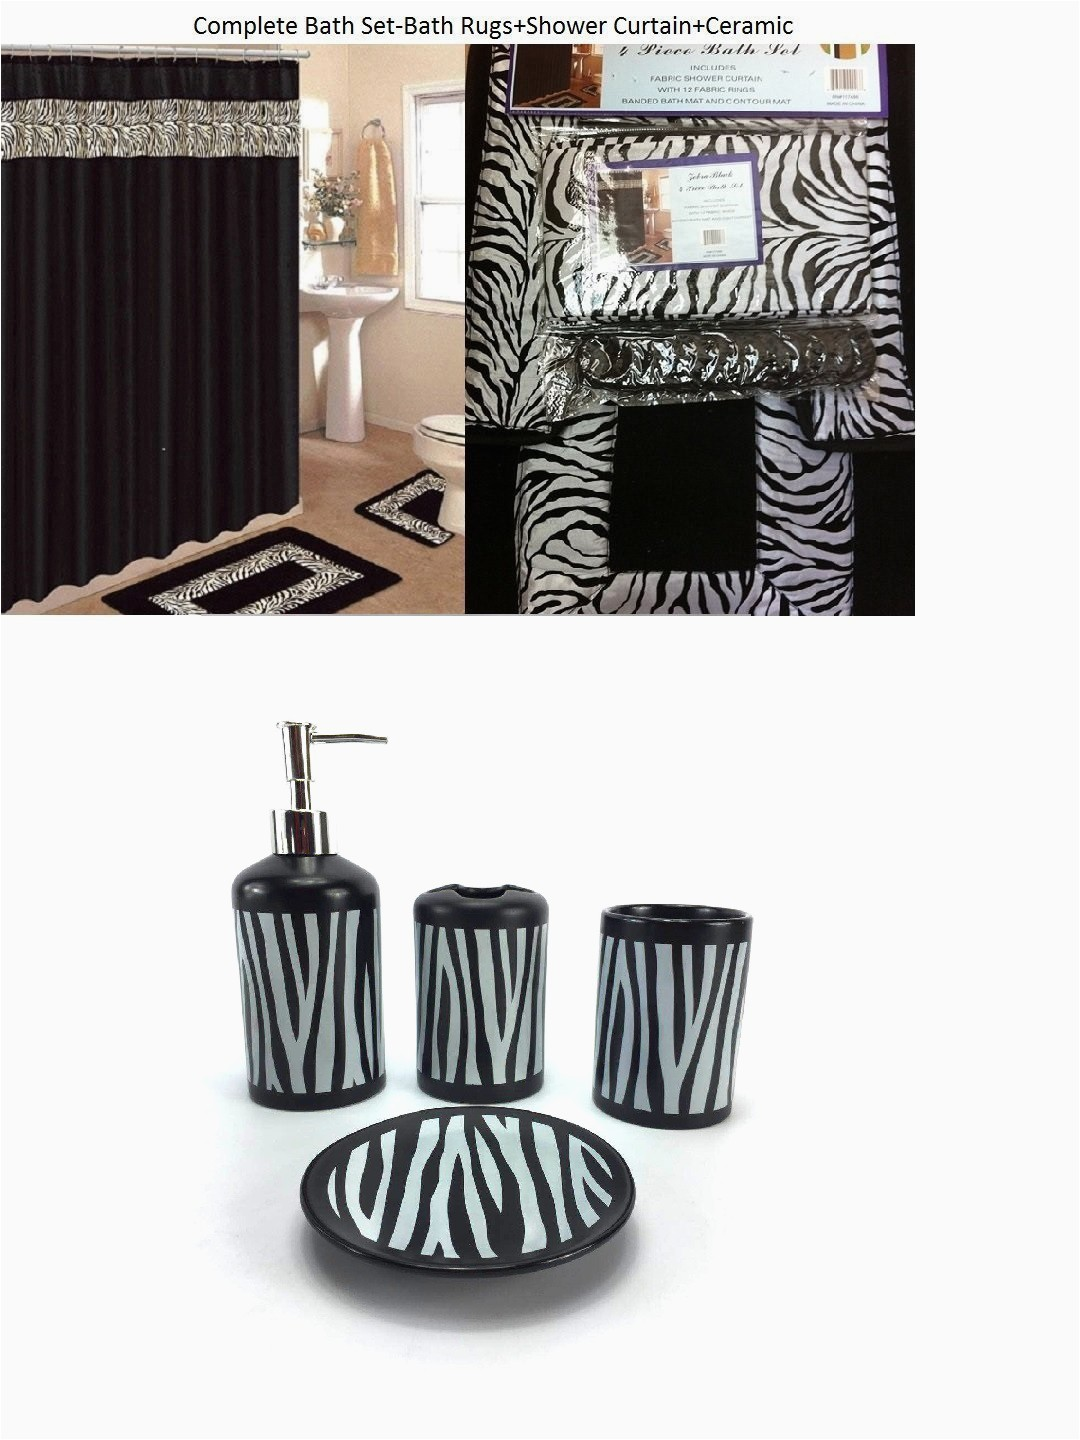 Zebra Print Bath Rugs 19 Piece Bath Accessory Set Black Zebra Animal Print Bath Rug Set Black Zebra Shower Curtain & Accessories Walmart